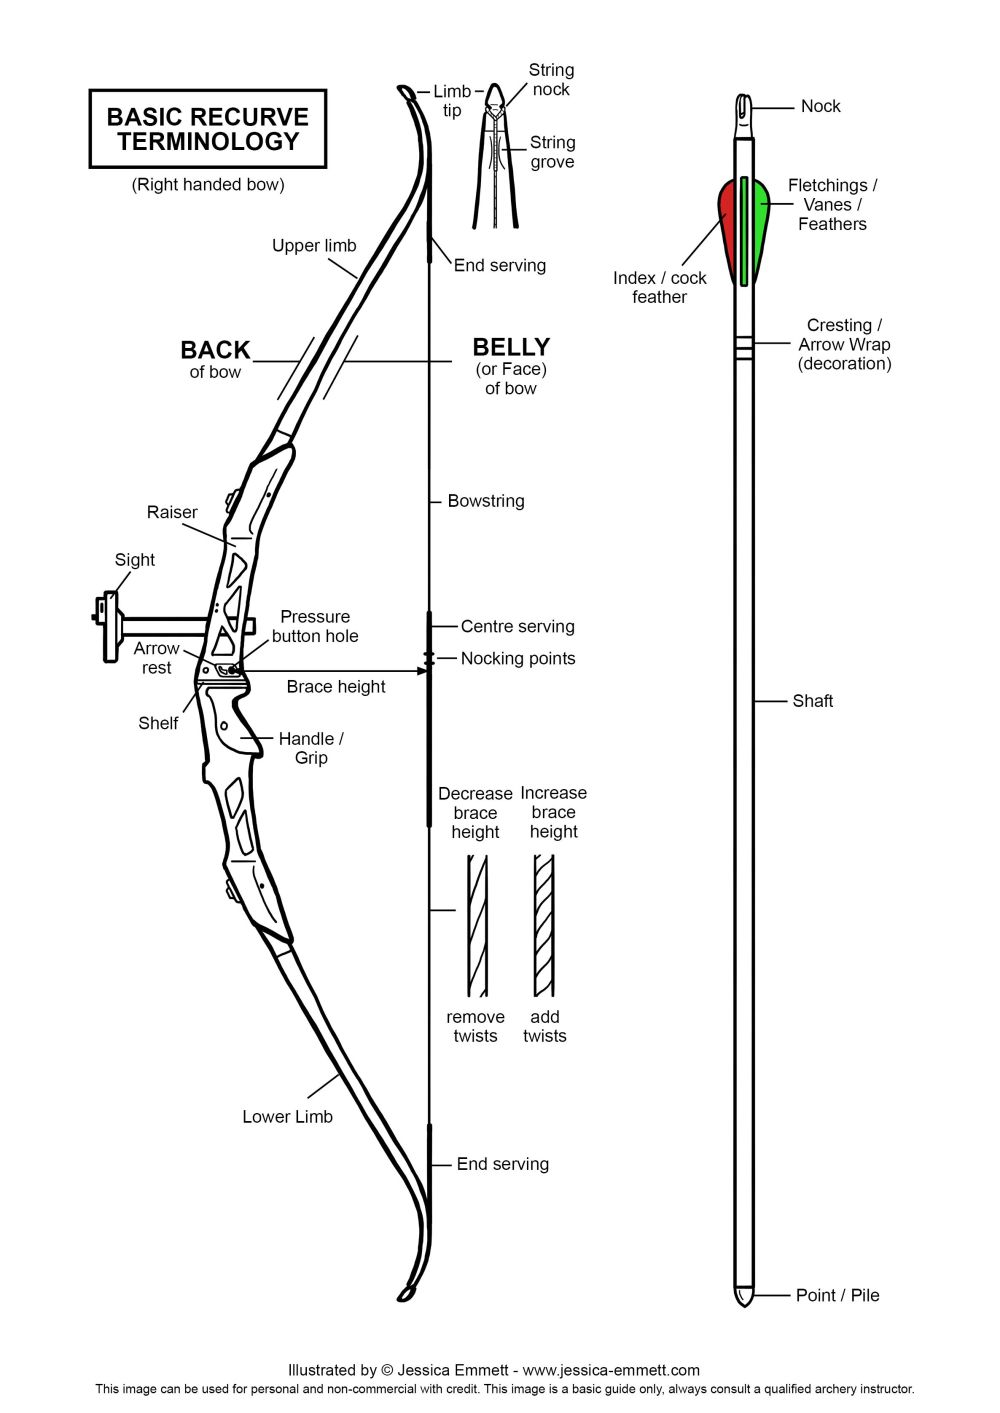 medium resolution of archery terms diagram wiring diagram inside archery terms diagram